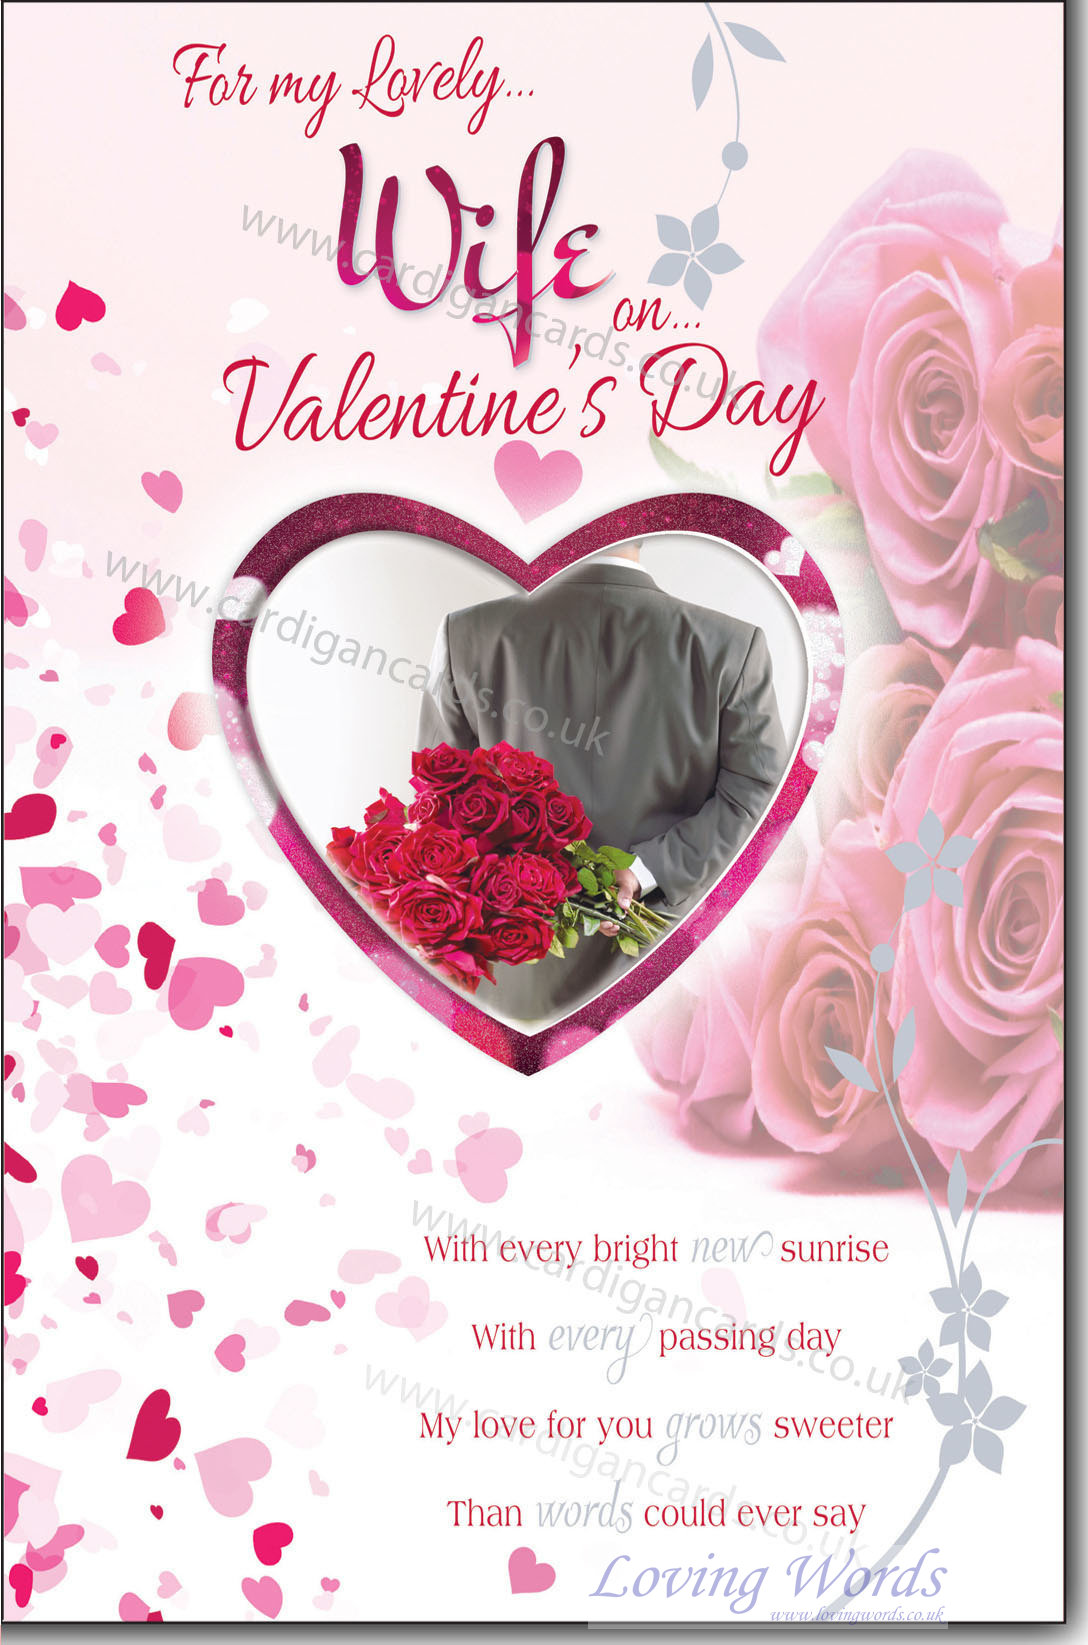 Lovely wife on valentines day greeting cards by loving words personalised greeting cards m4hsunfo